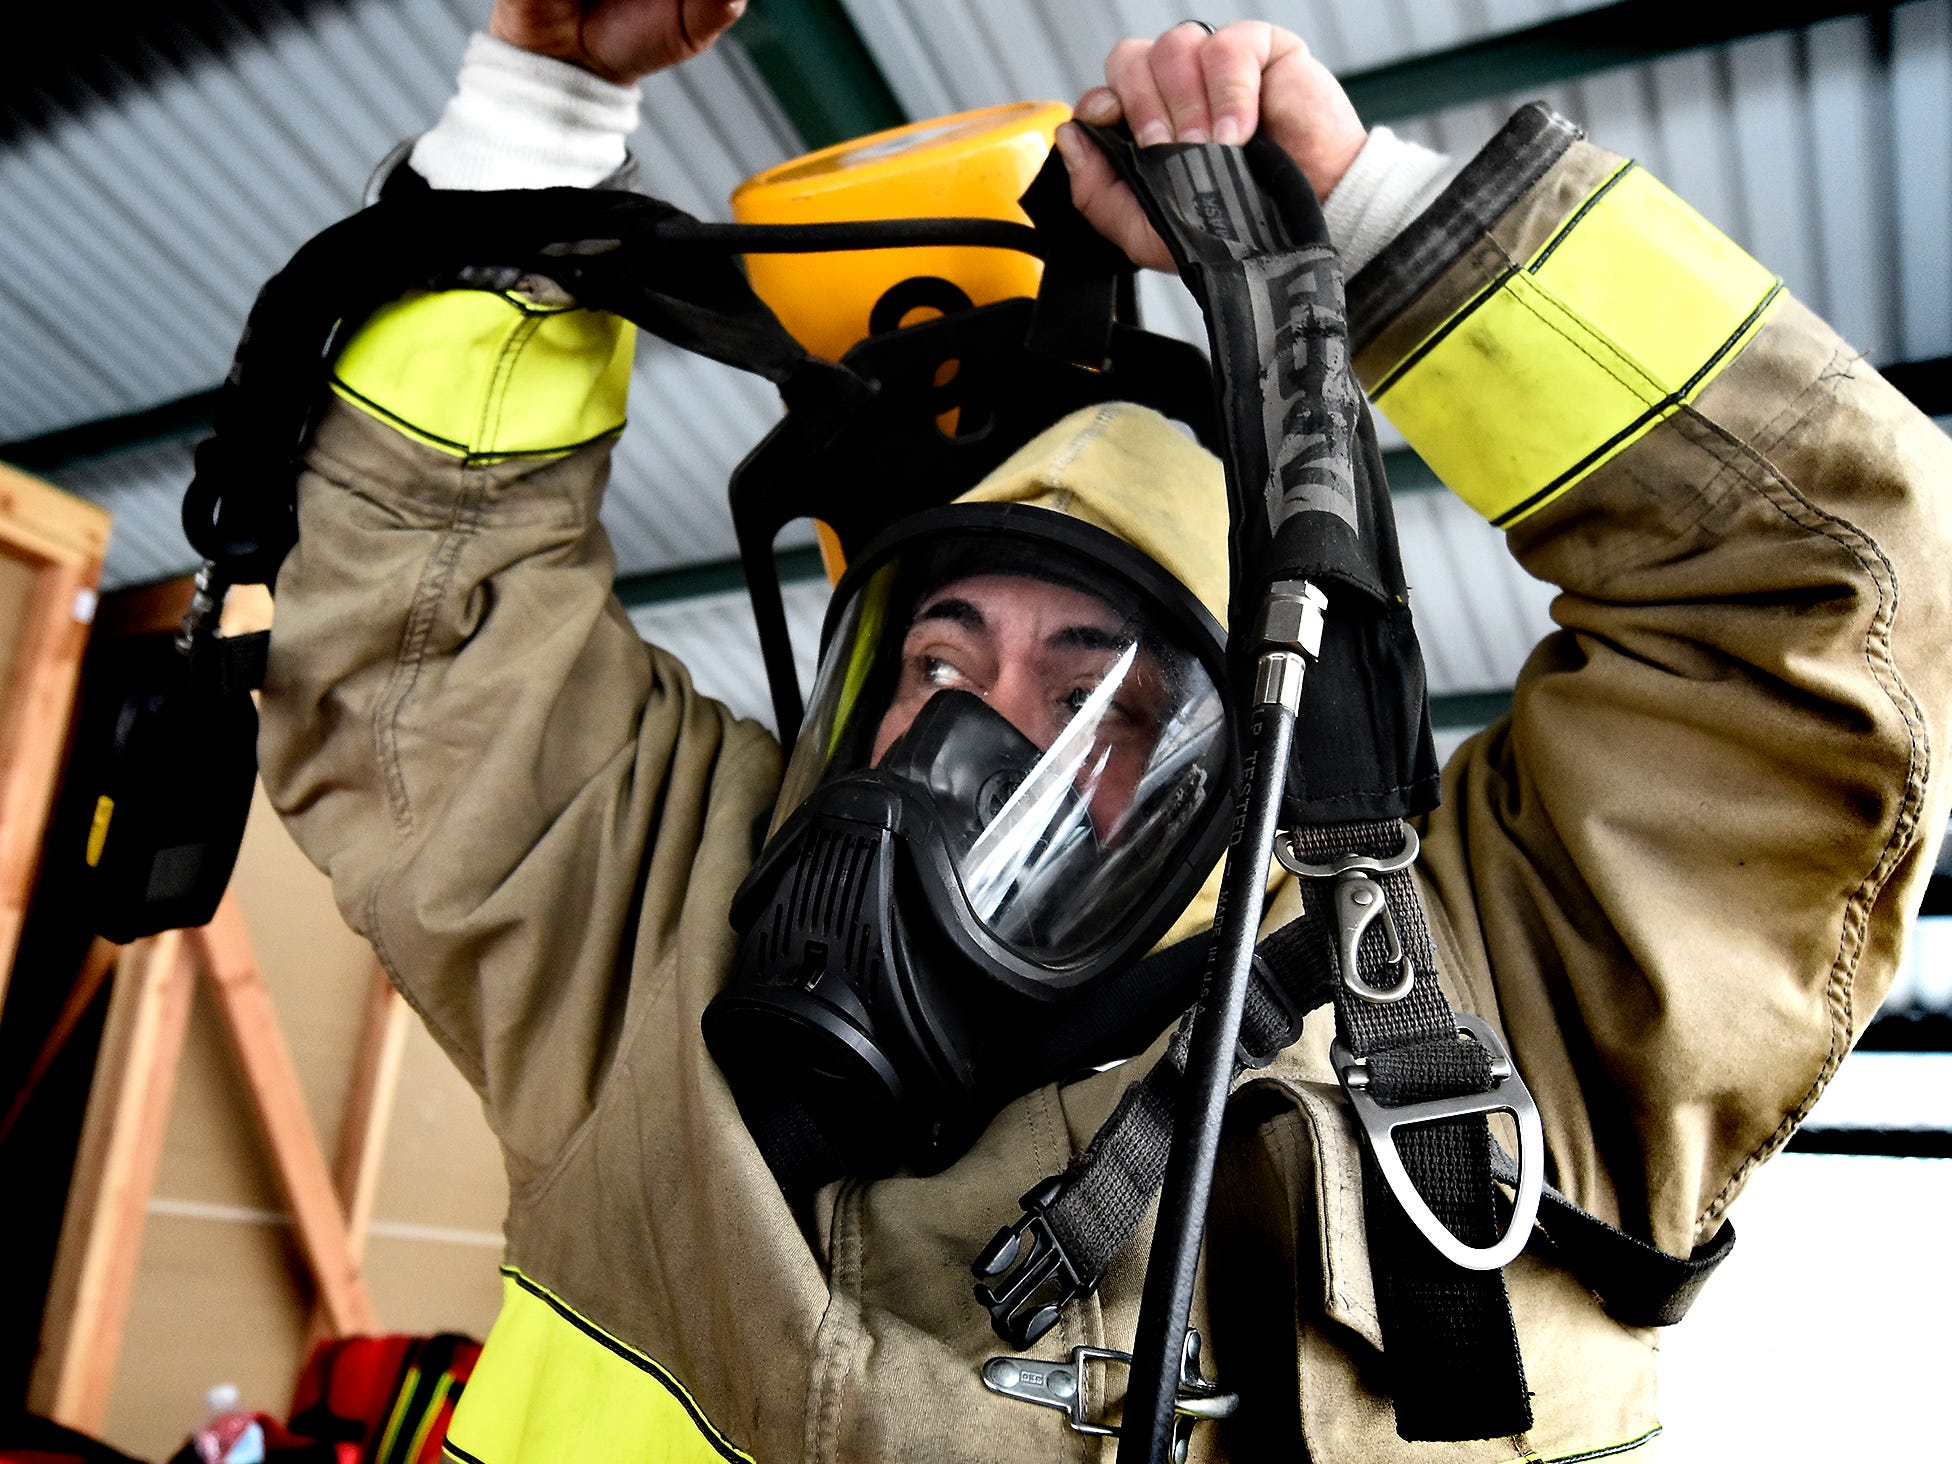 York County Prison corrections officer Juan Canales dons gear while preparing for a fire scenario at the York County Fire School during training there Friday, March 8, 2019. Members of the prison's 30-member Fire Emergency Response Team were completing a 40-hour fire training course at the school. The FERT team is designed to control fire emergencies onsite prior to the arrival of firefighters. Bill Kalina photo